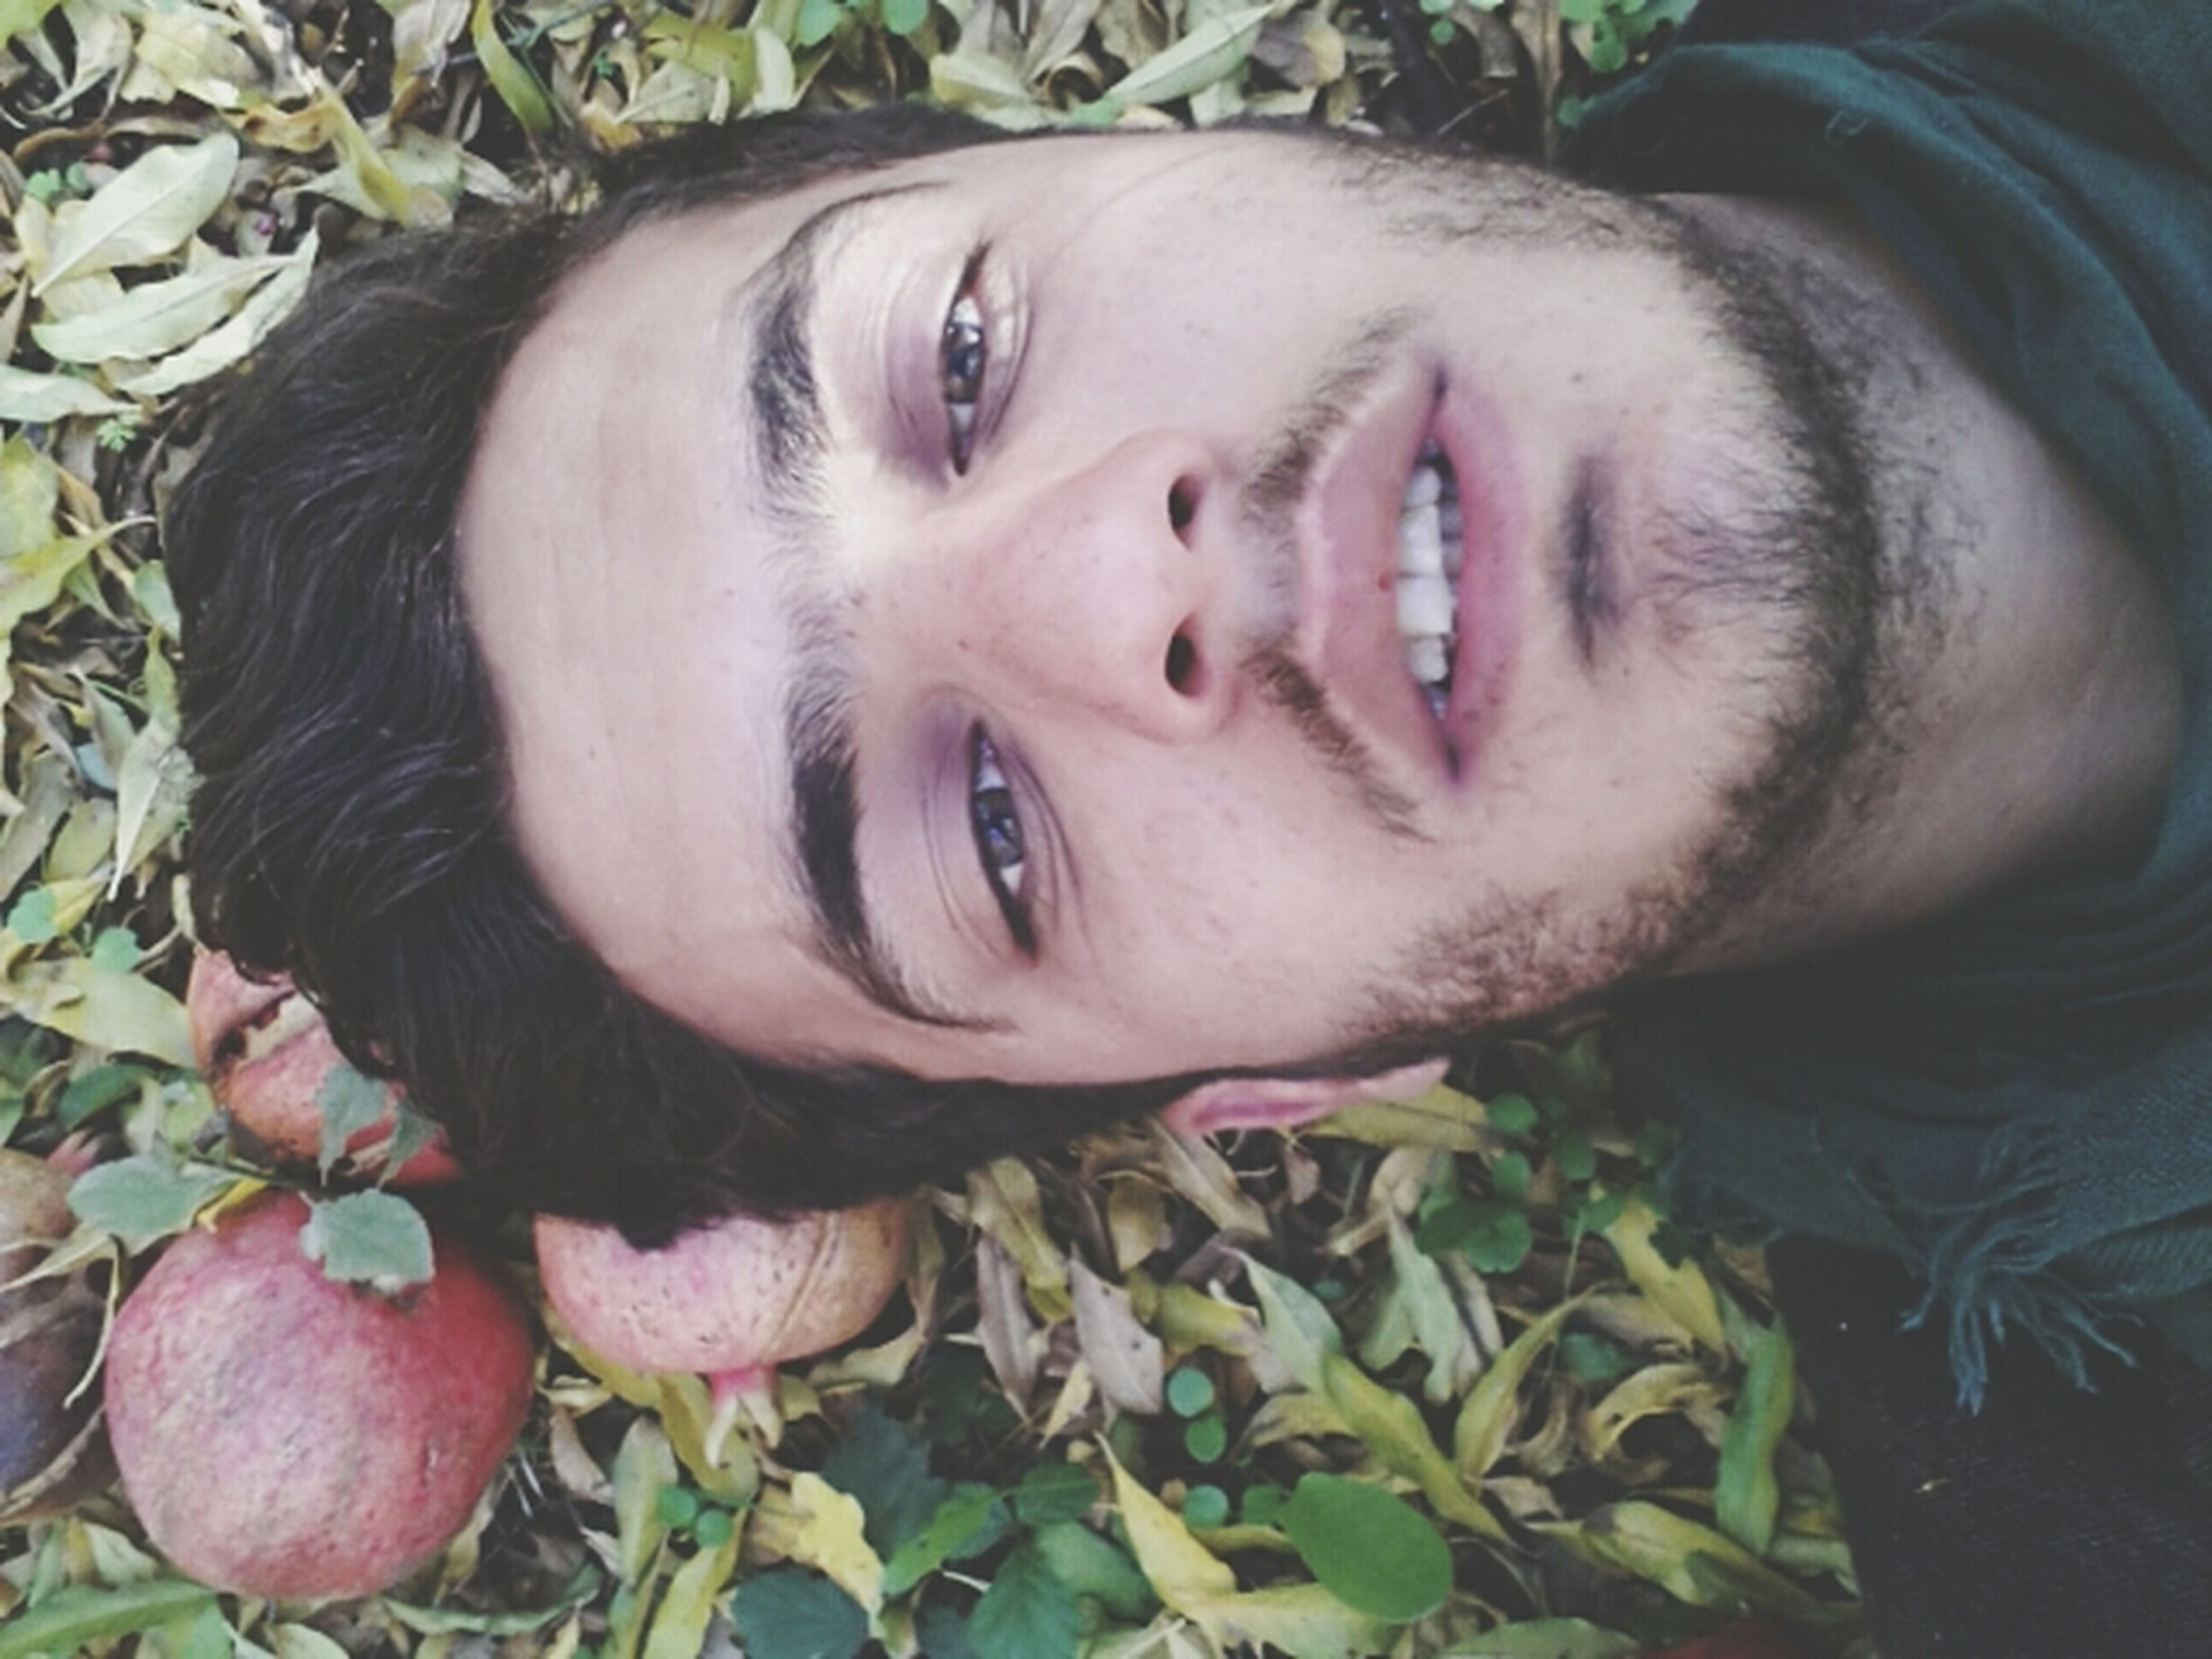 portrait, looking at camera, lifestyles, person, leisure activity, headshot, young adult, front view, high angle view, leaf, close-up, smiling, relaxation, day, casual clothing, nature, outdoors, growth